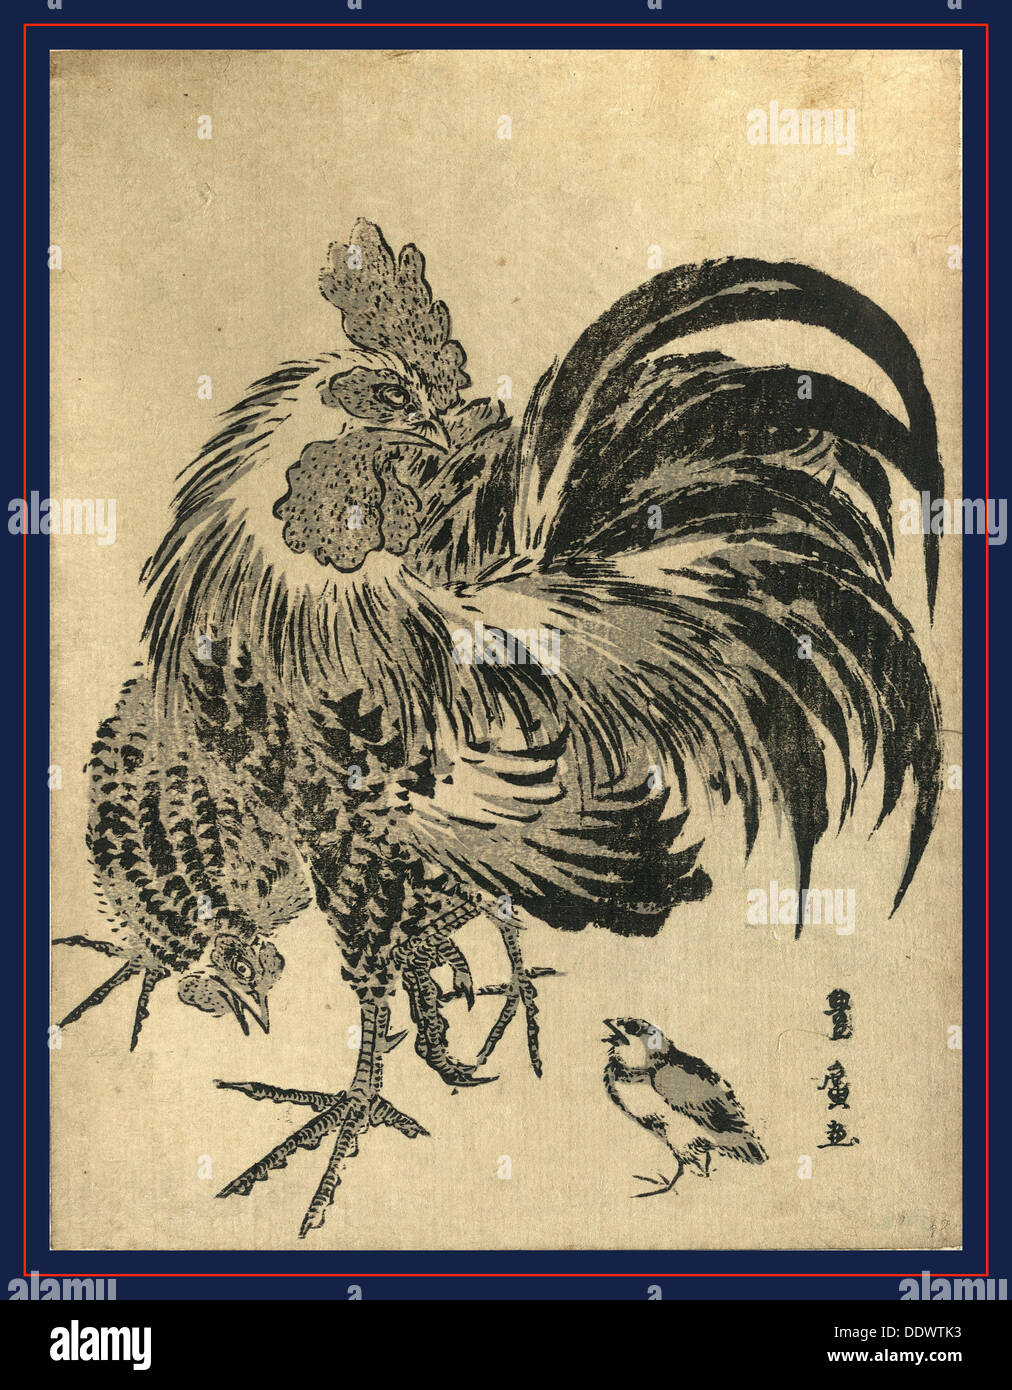 Niwatori, Hen and chick. [between 1804 and 1818], 1 print : woodcut, color ; 22.1 x 17 - Stock Image